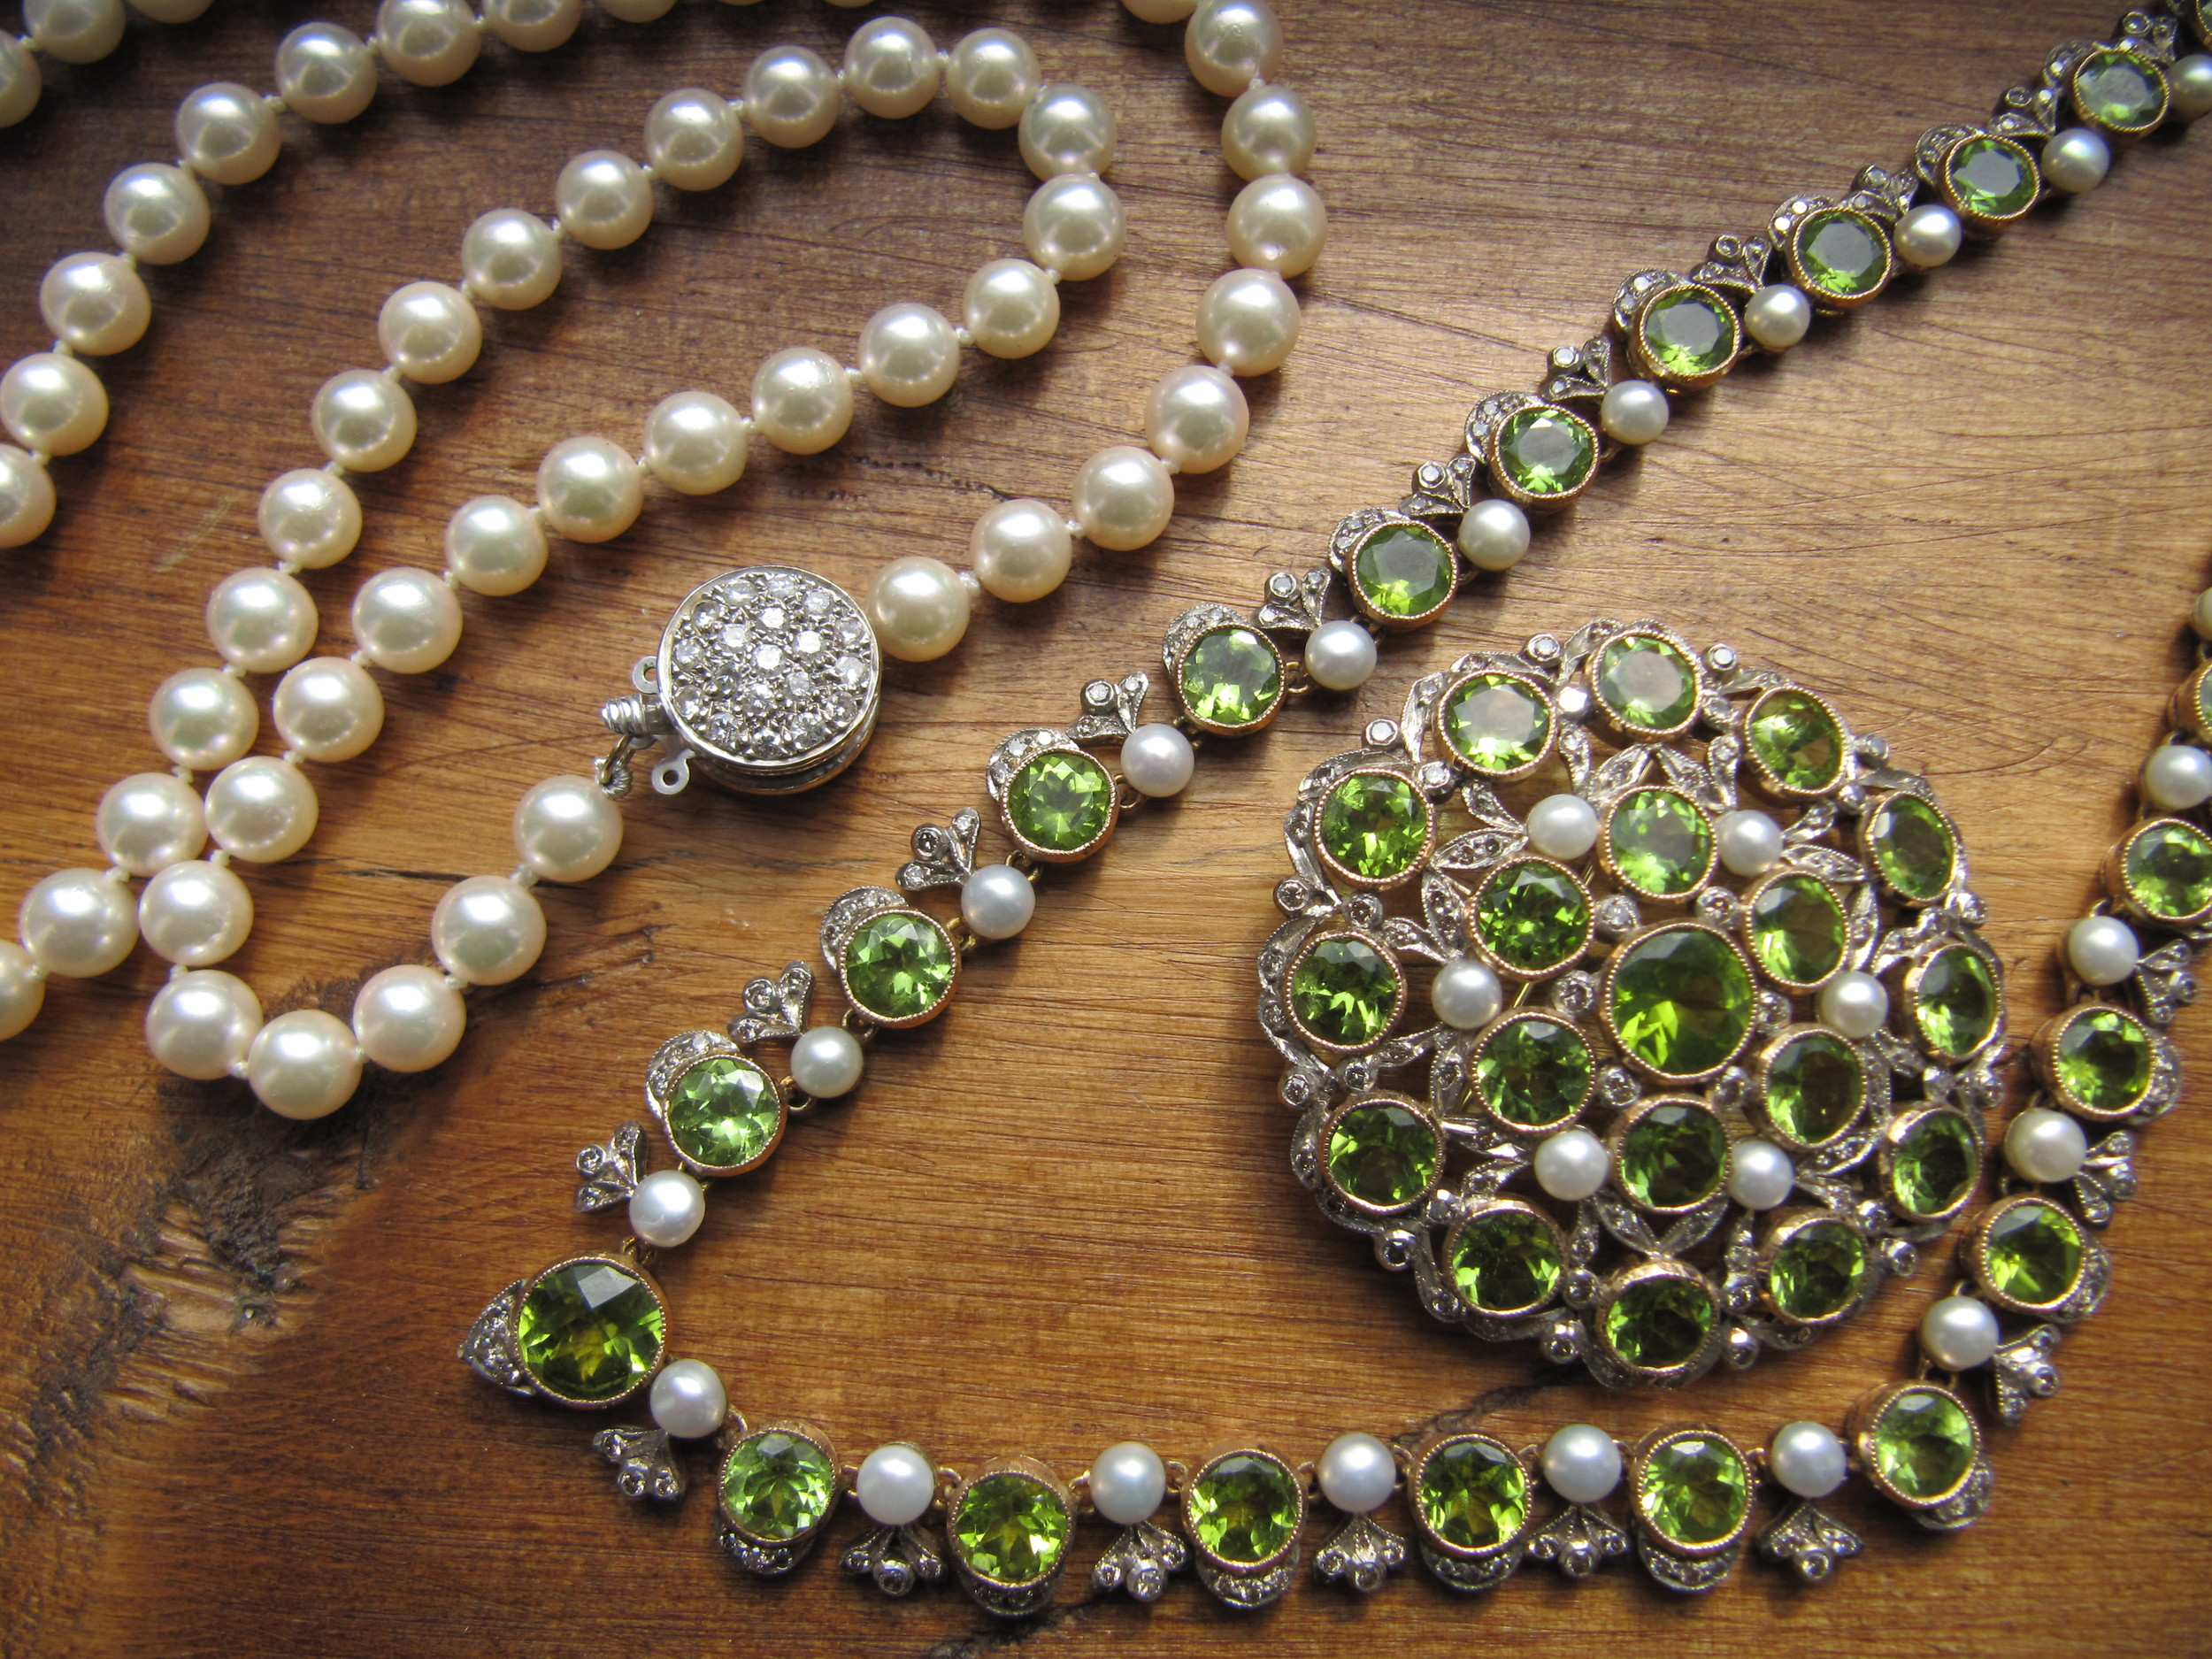 Pearl necklace with diamond clasp $1875 and an Edwardian era platinum on gold, peridot, pearl and diamond necklace with detachable pendant/broach $12,000 for the set, both available at Walton's.